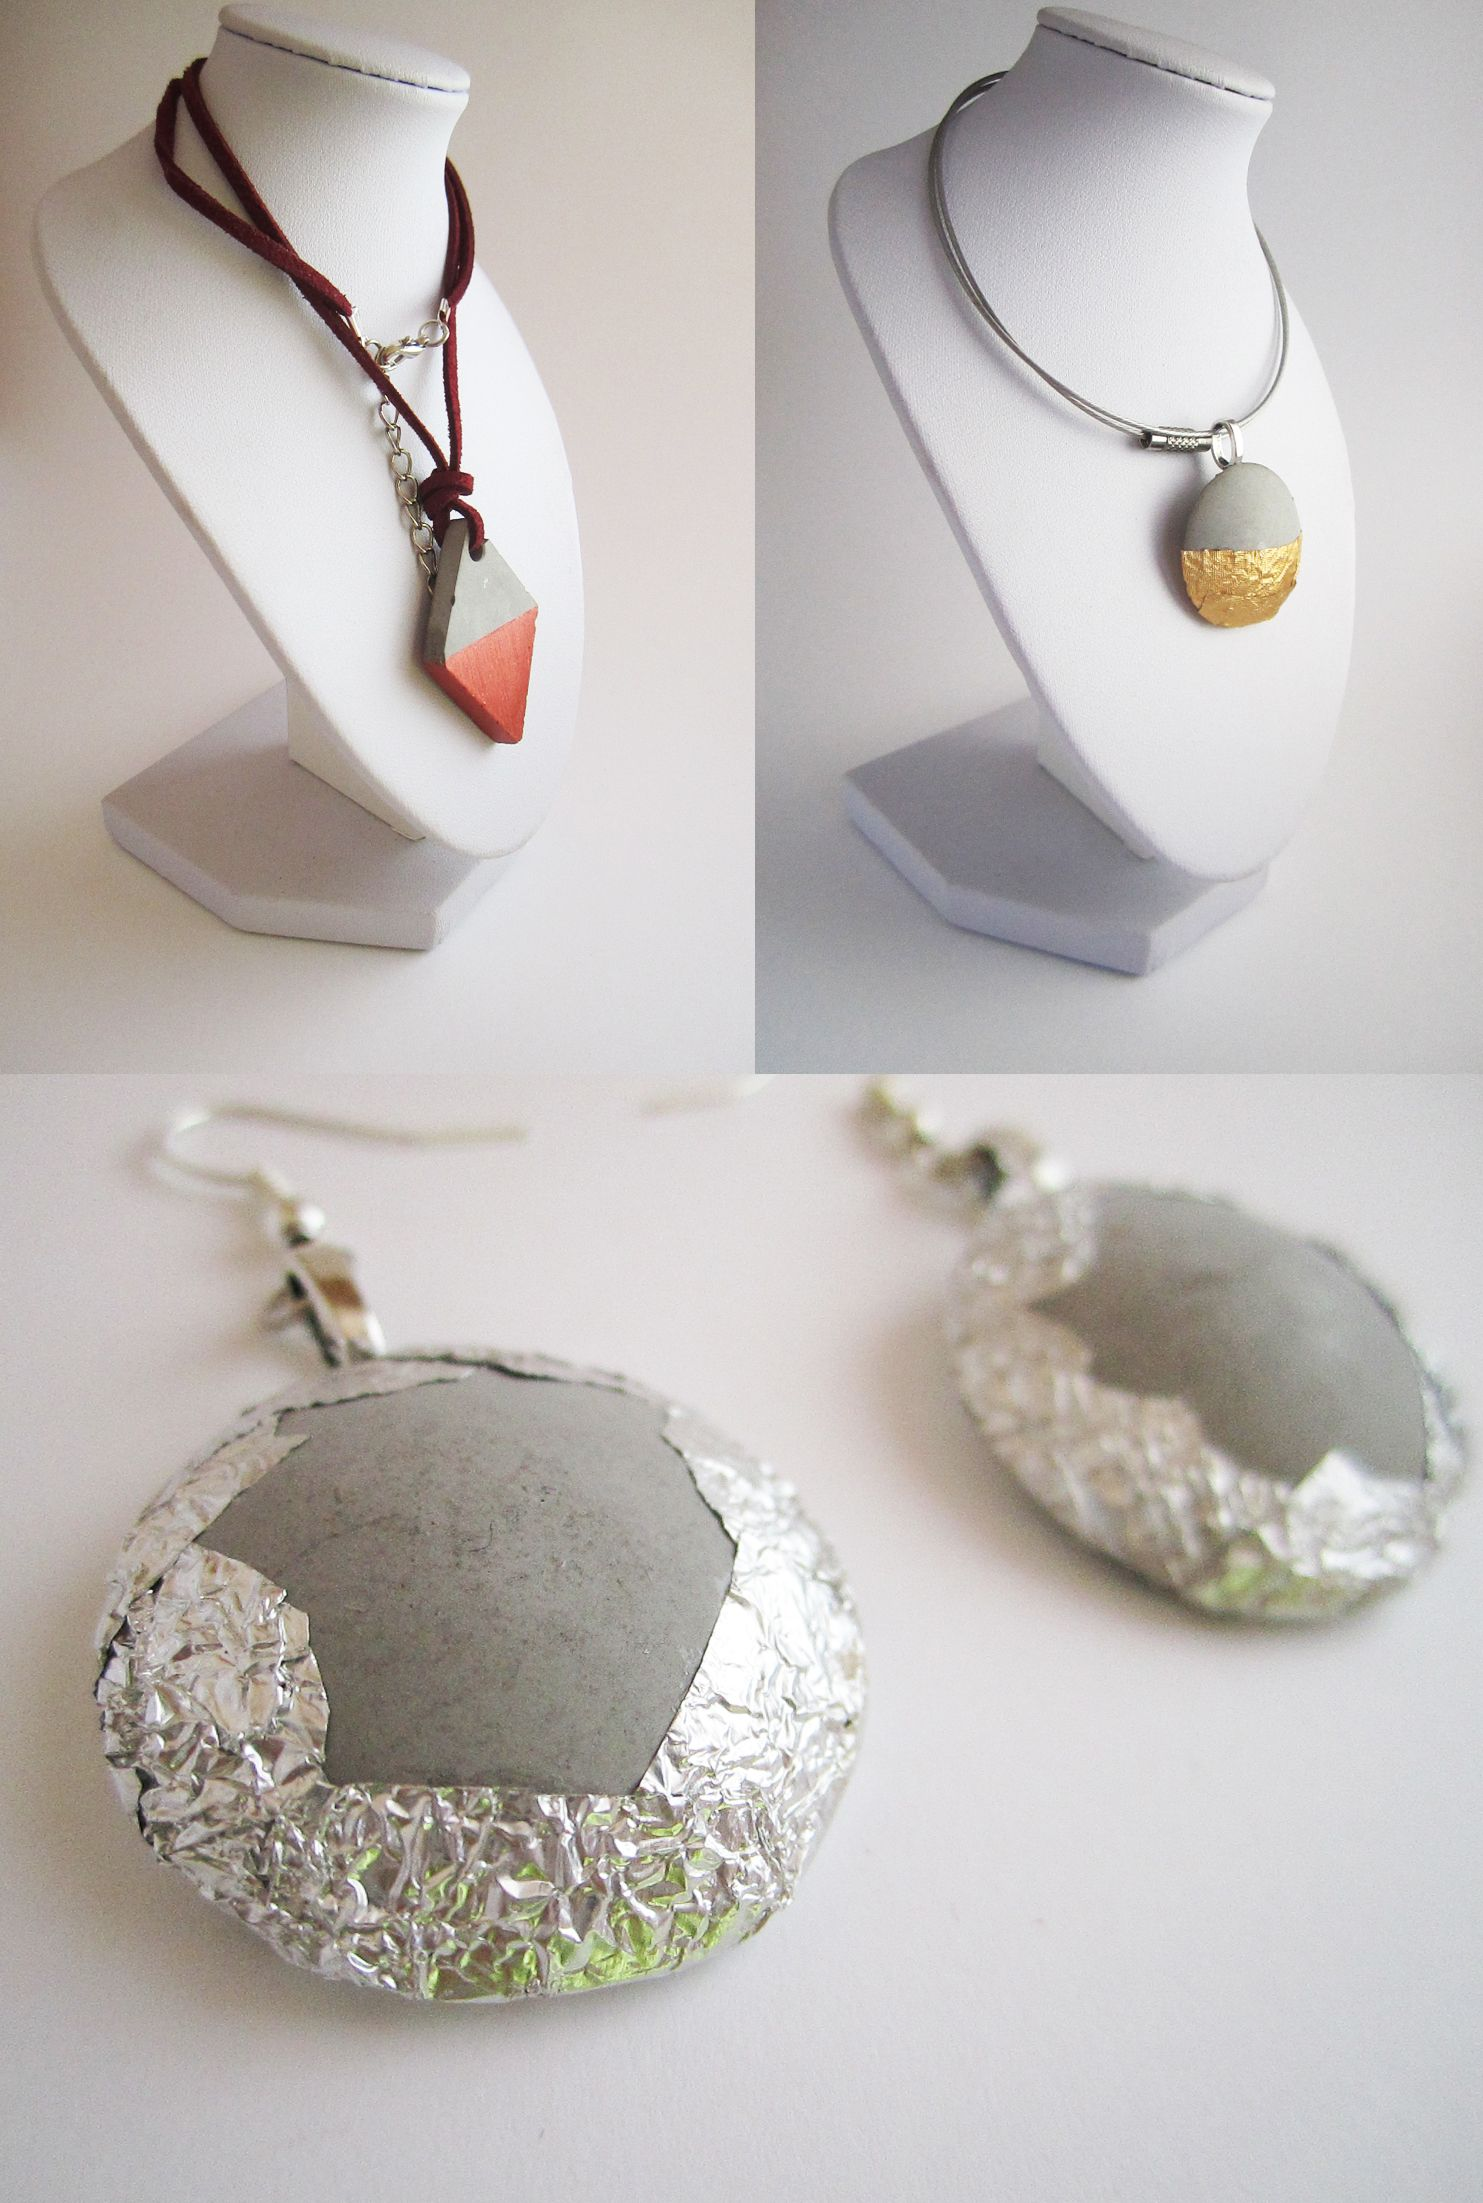 bijoux en béton / croncrete jewel | concrete jewellery | pinterest